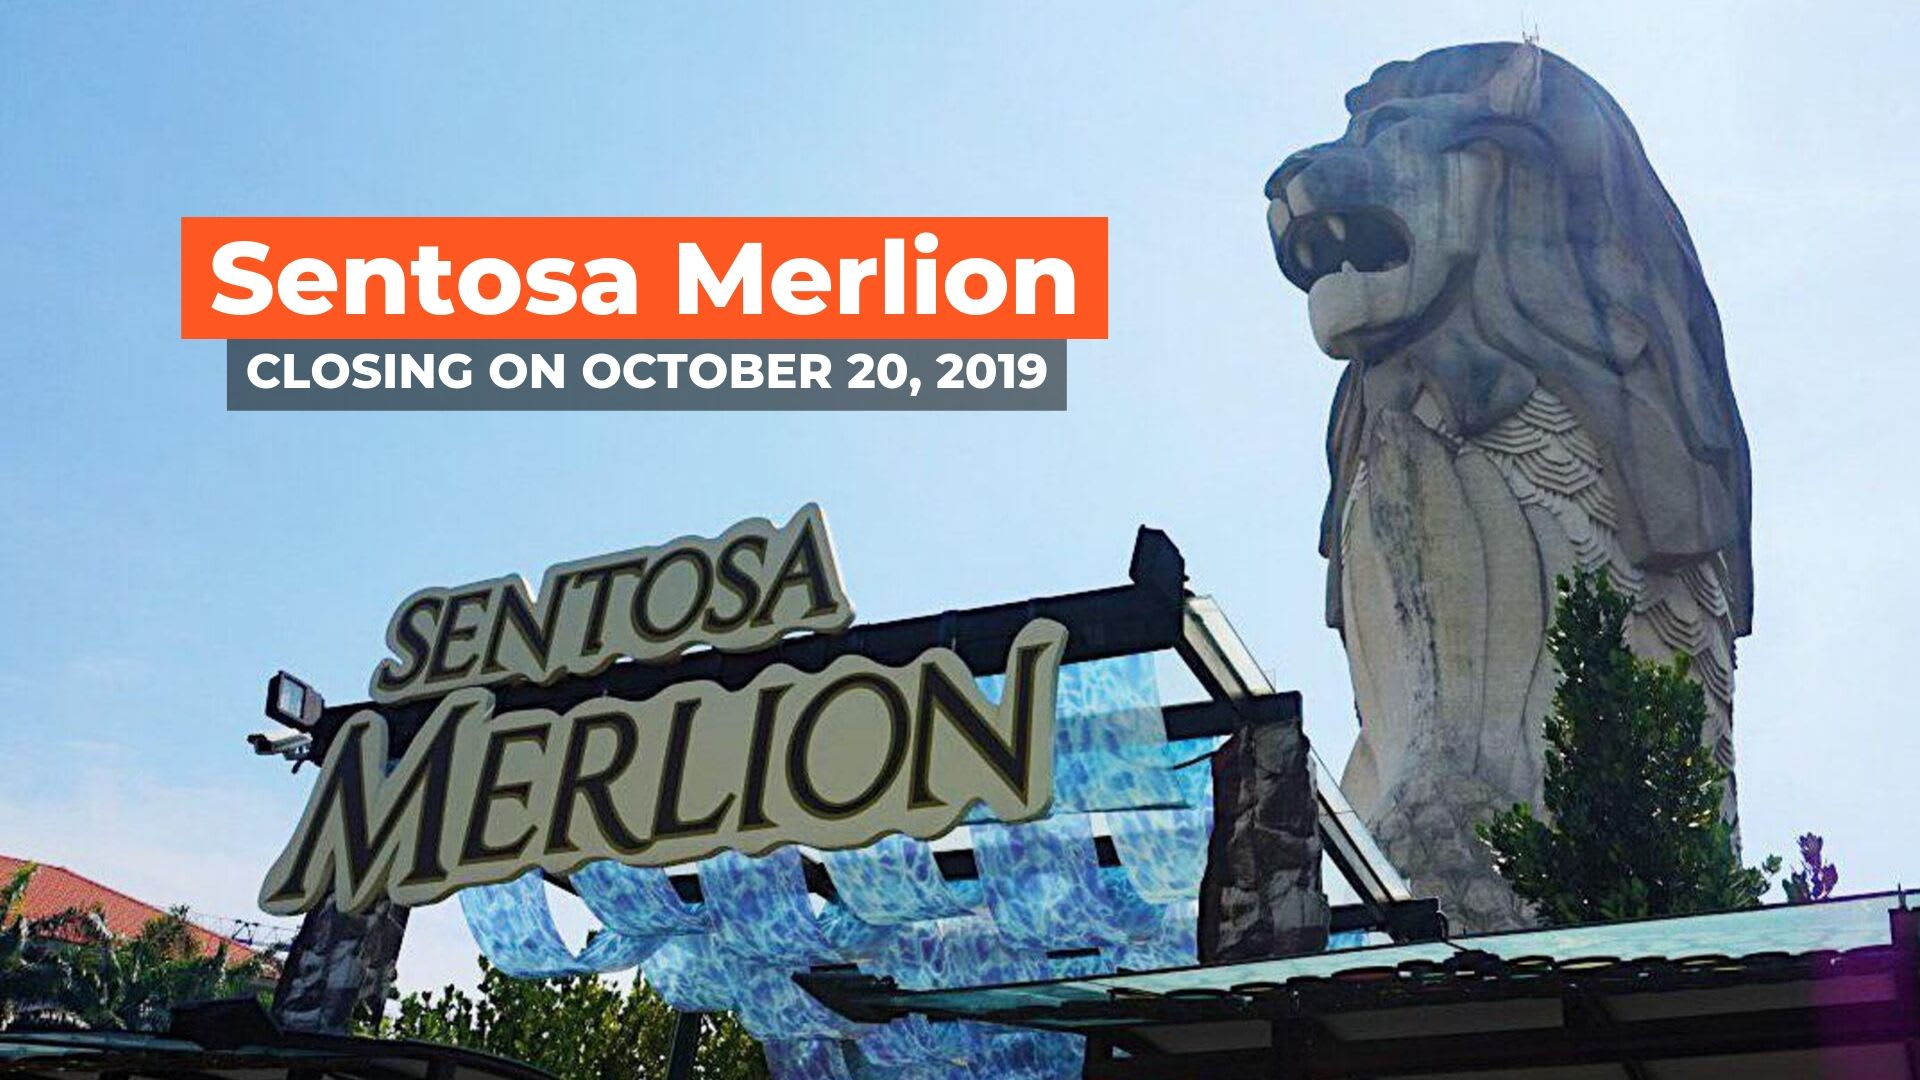 merlion sentosa closing